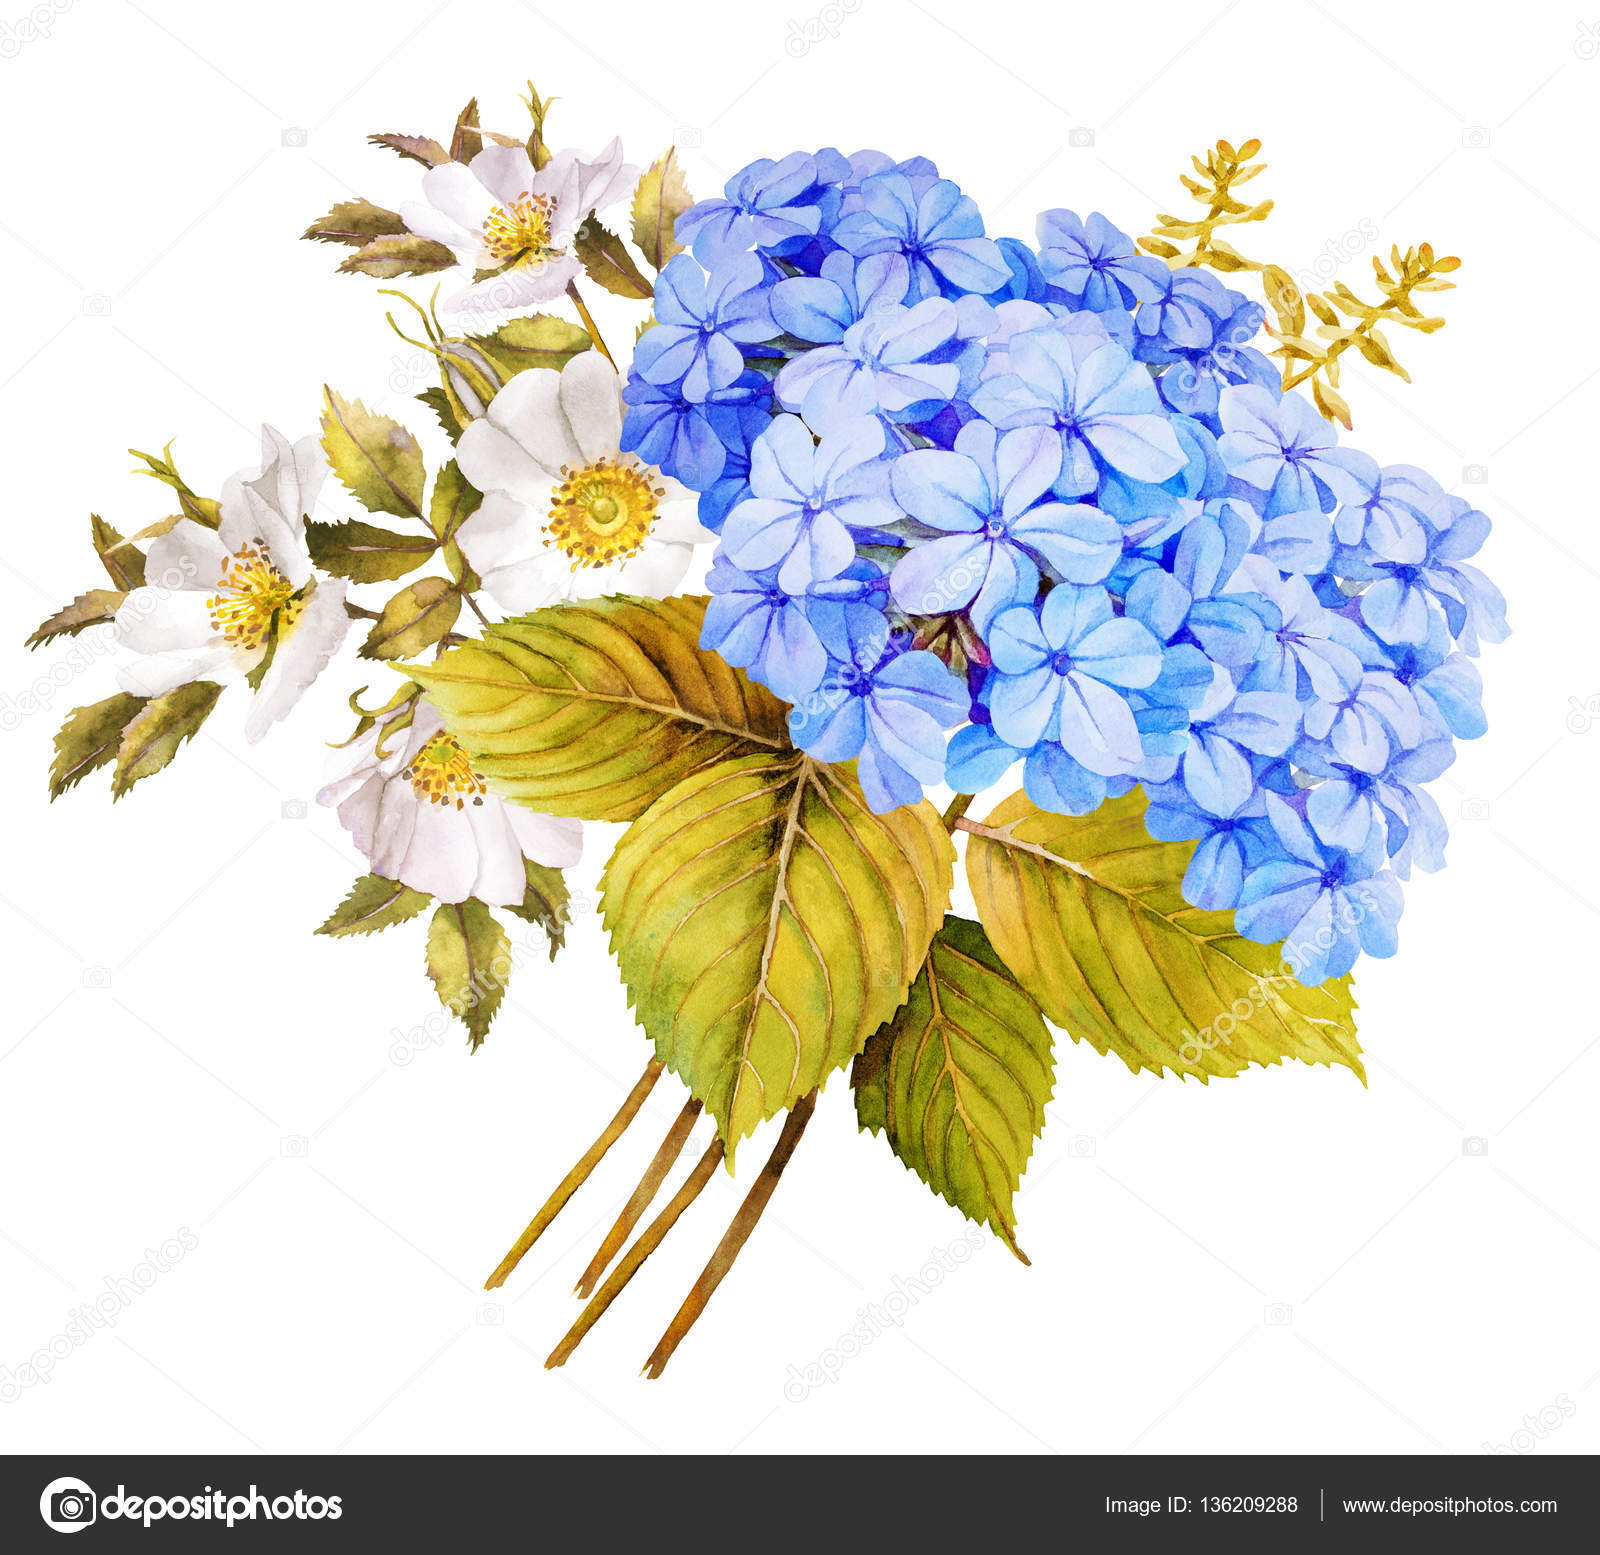 Blue white flower wedding bouquet watercolor hydrangea roses a blue white flower wedding bouquet watercolor hydrangea roses and blue jasmine illustration photo by anamad izmirmasajfo Image collections